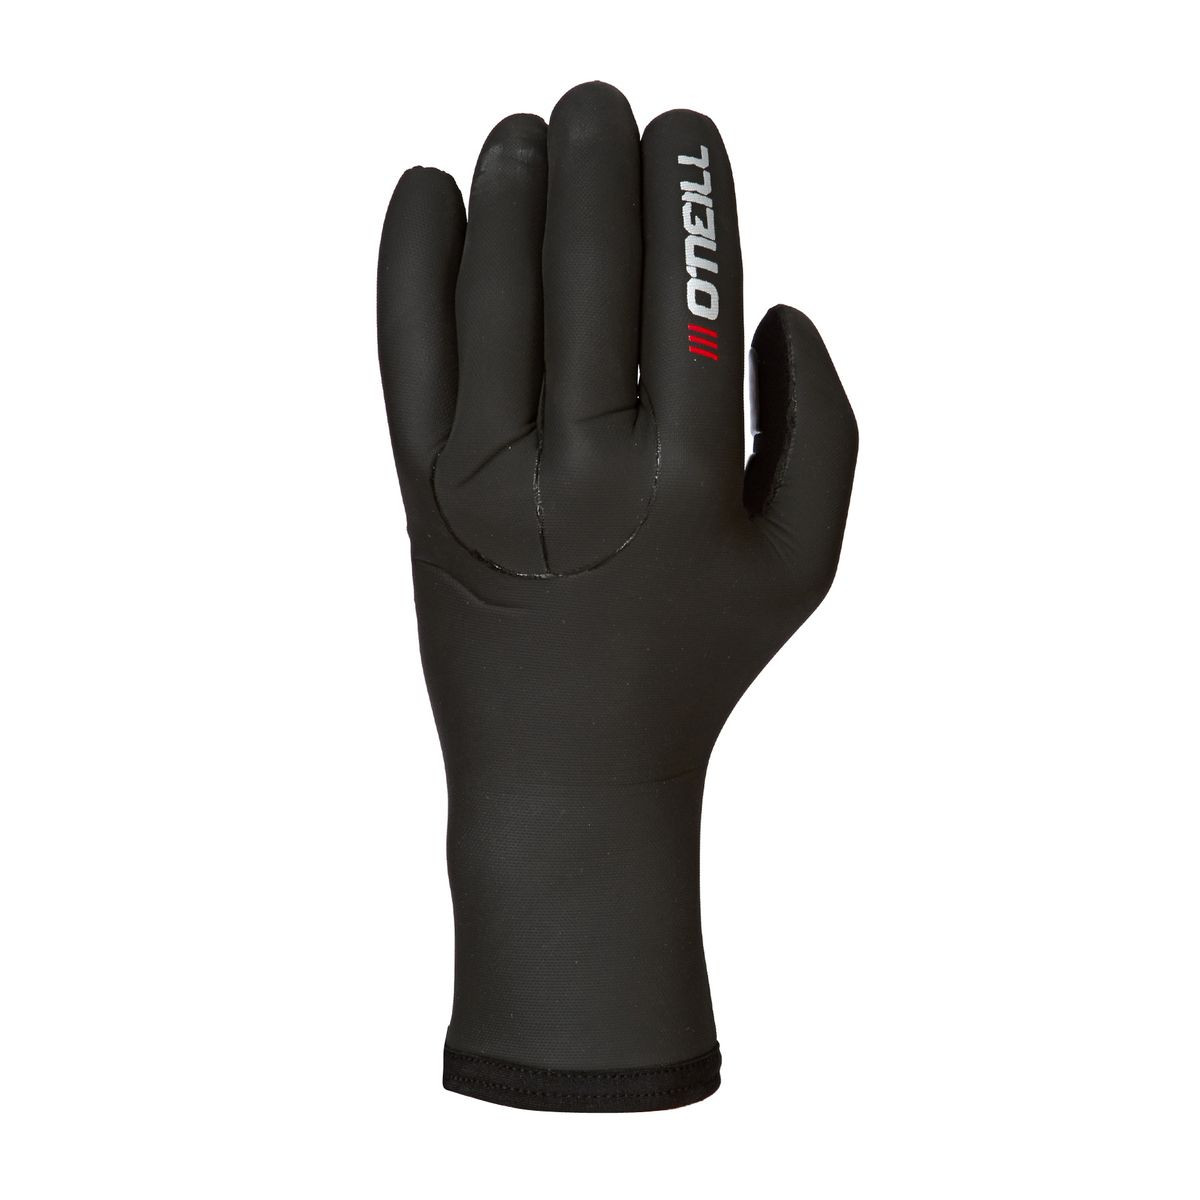 O'Neill SLX 3mm 5 Finger Wetsuit Gloves - Black